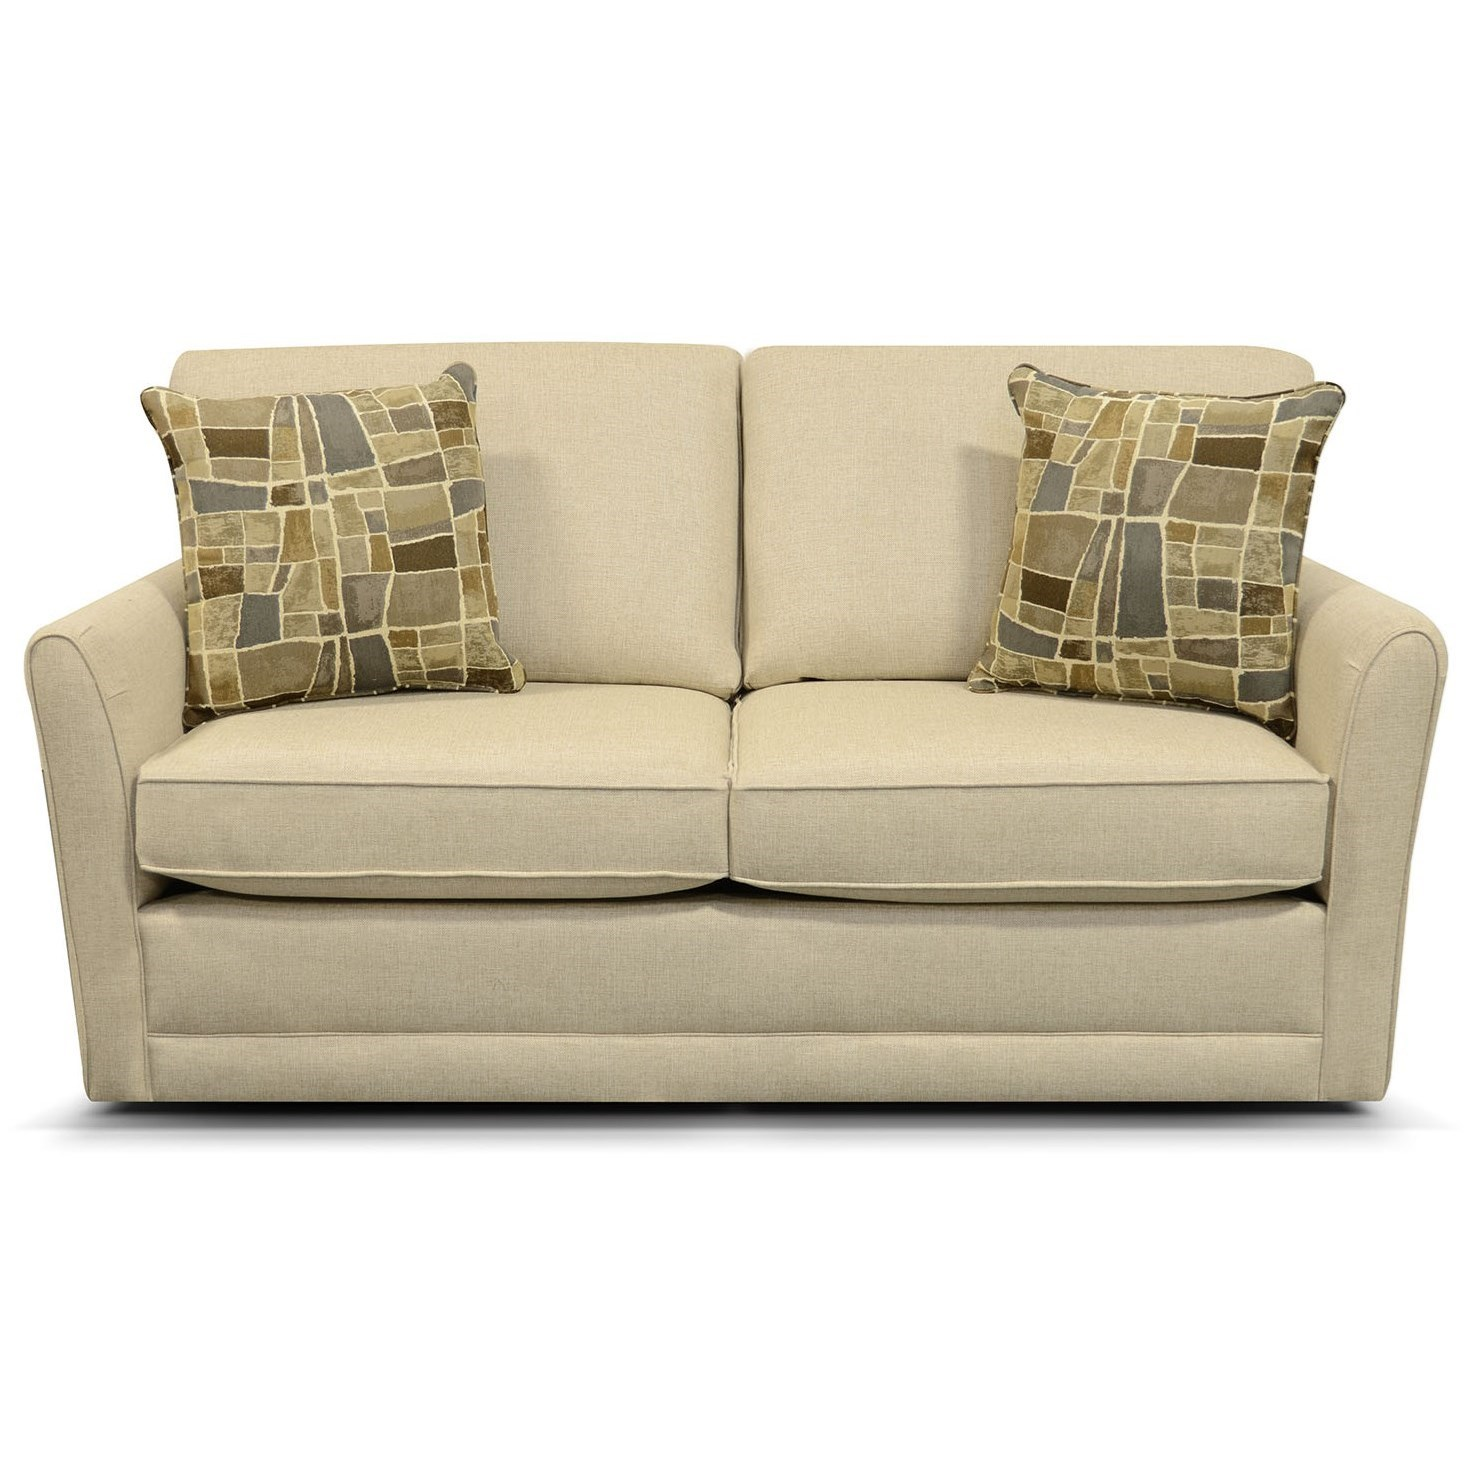 Tripp Loveseat by England at Furniture Superstore - Rochester, MN